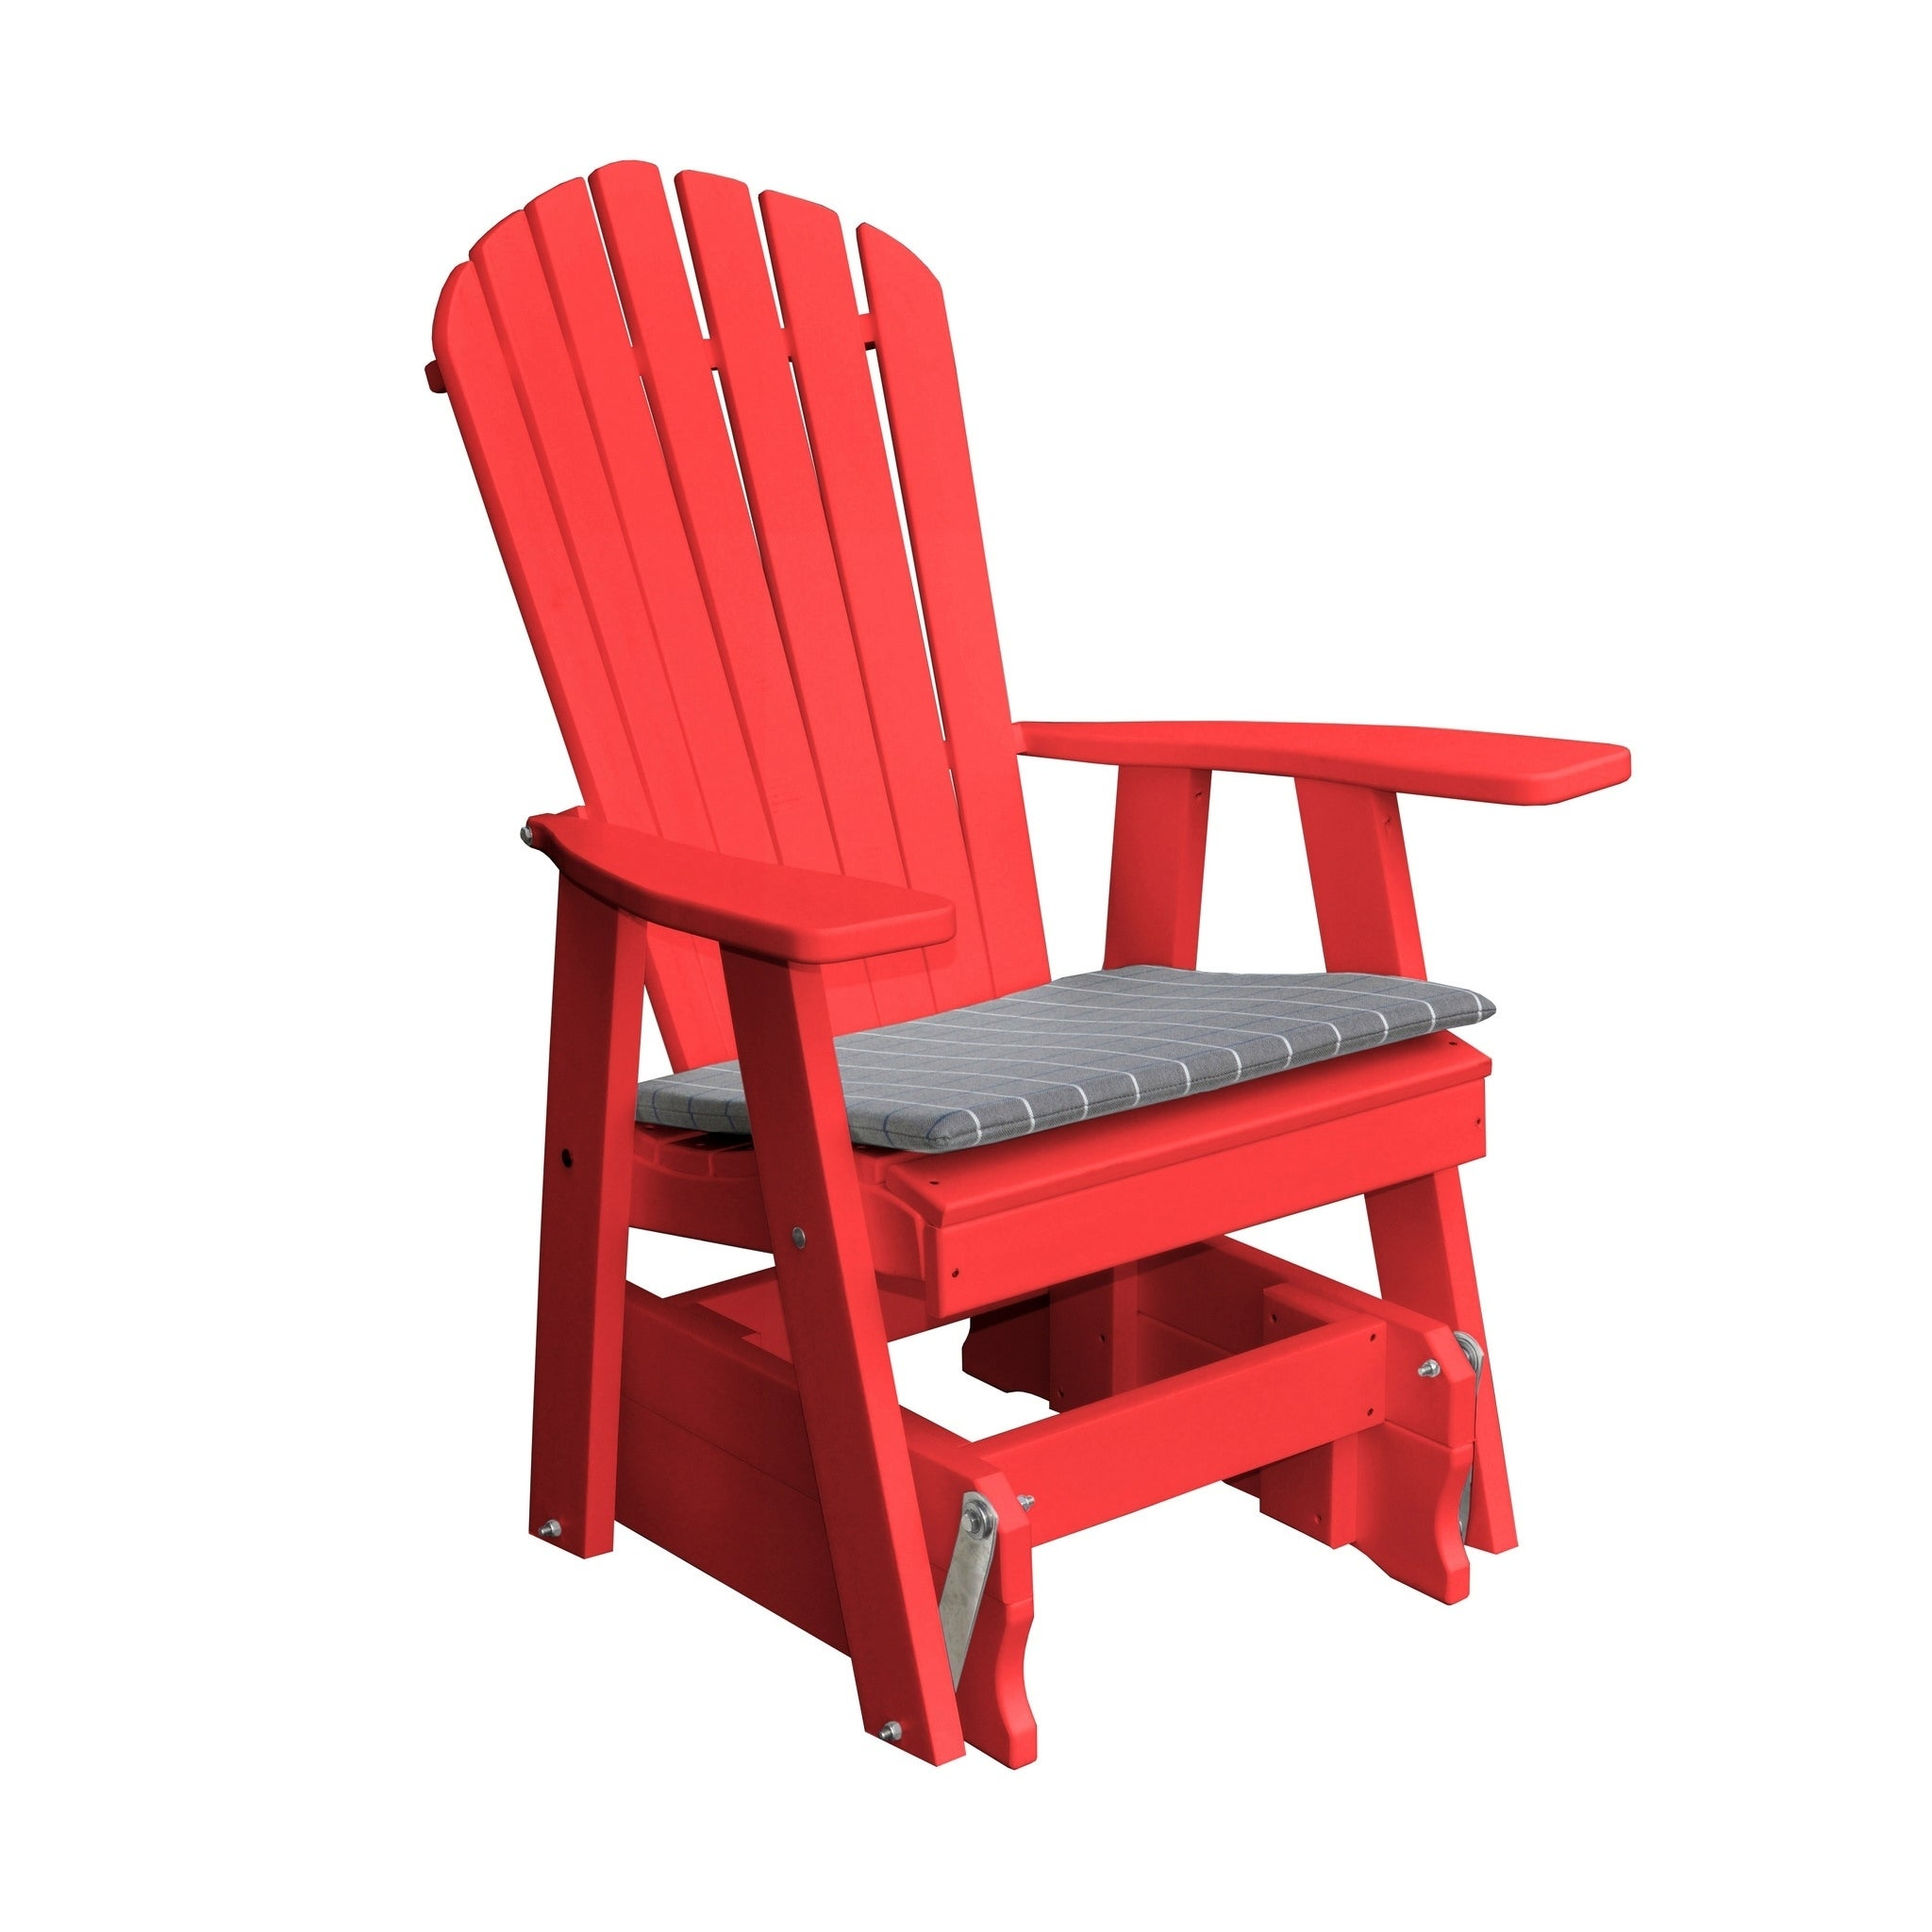 huge discount a1db9 73c9a Outdoor Adirondack Style Gliding Chair - Recycled Plastic